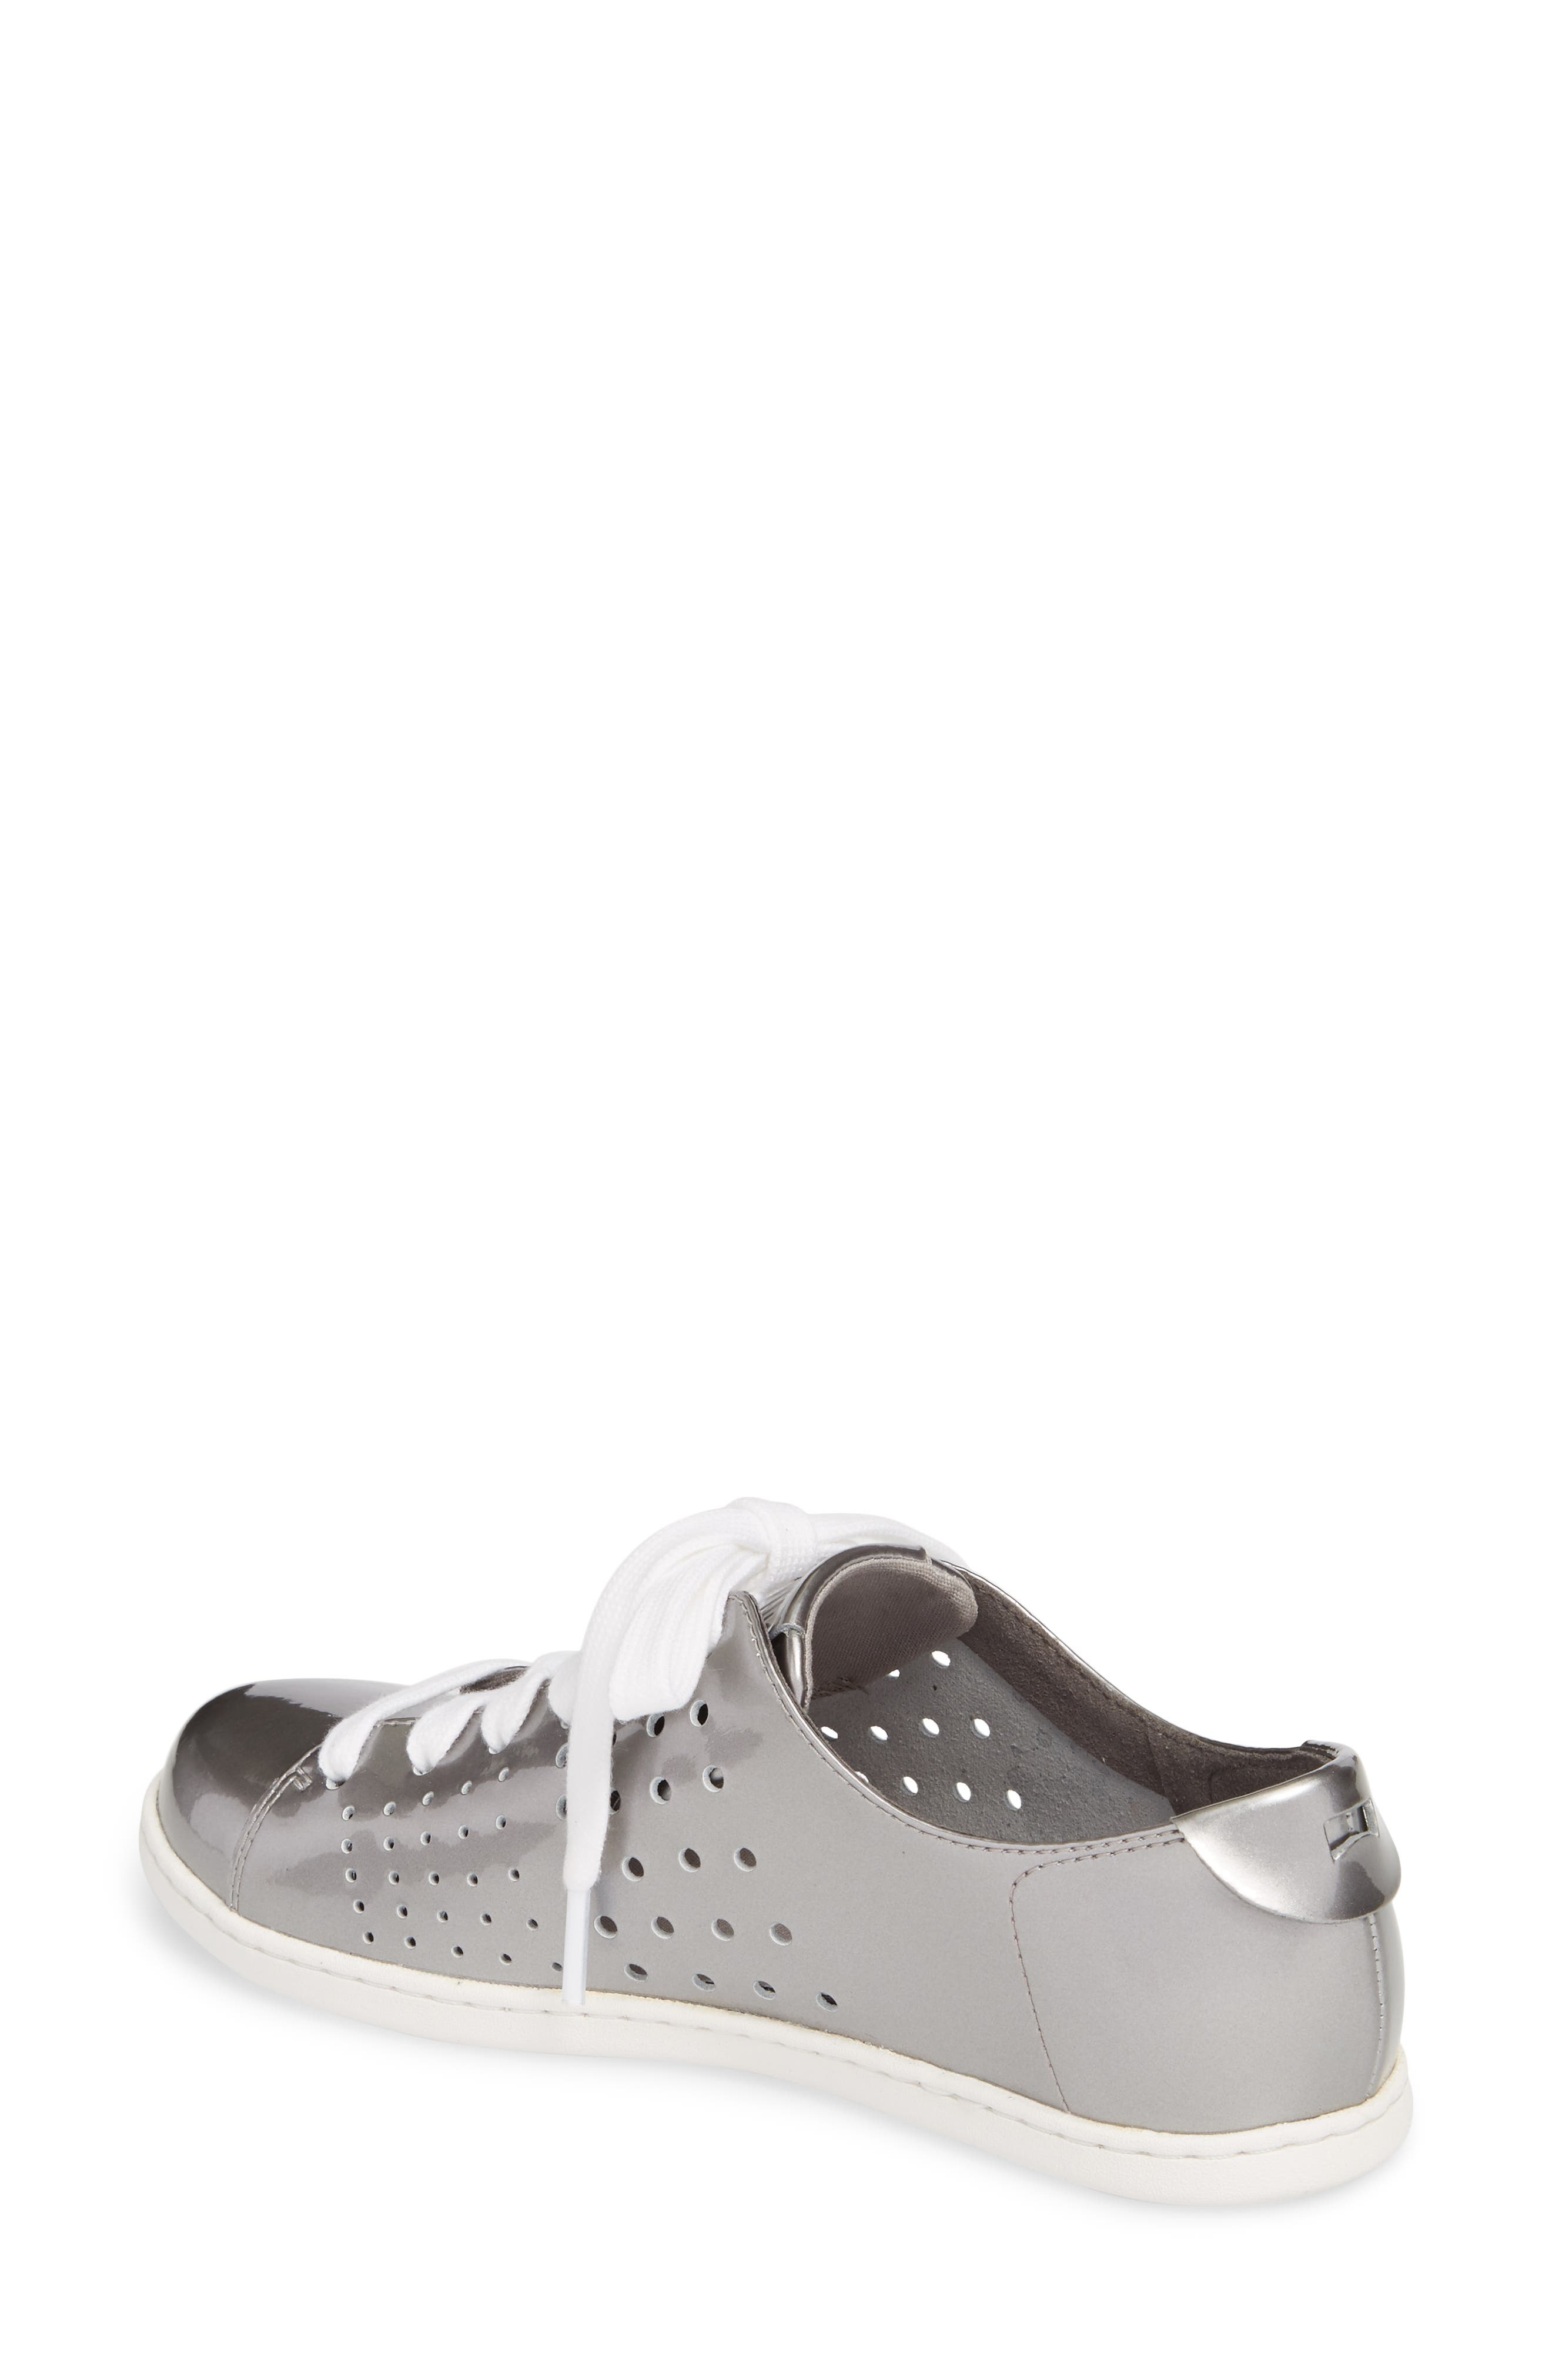 Twins Perforated Low Top Sneaker,                             Alternate thumbnail 2, color,